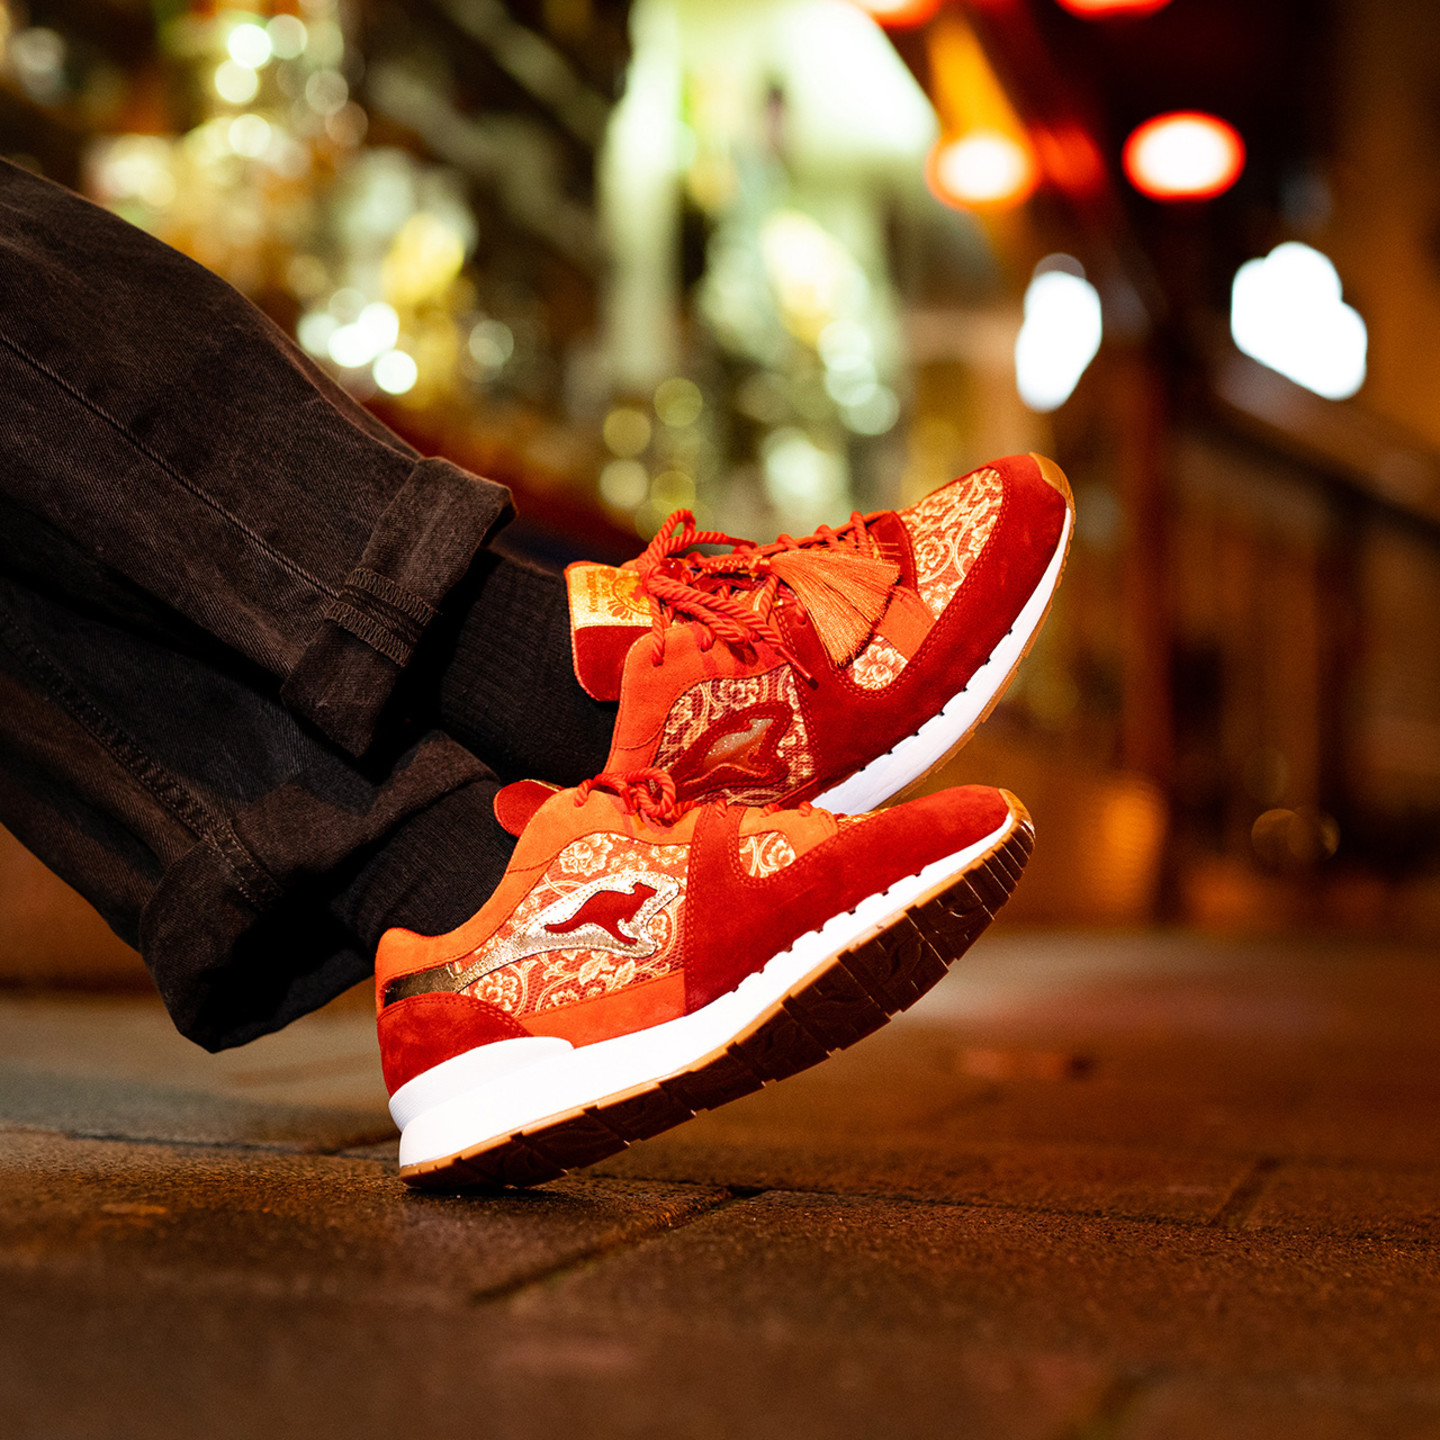 KangaROOS Coil R-1 'Chinese New Year' - Made in Germany Red / Metallic Gold 47CNY 000 6999